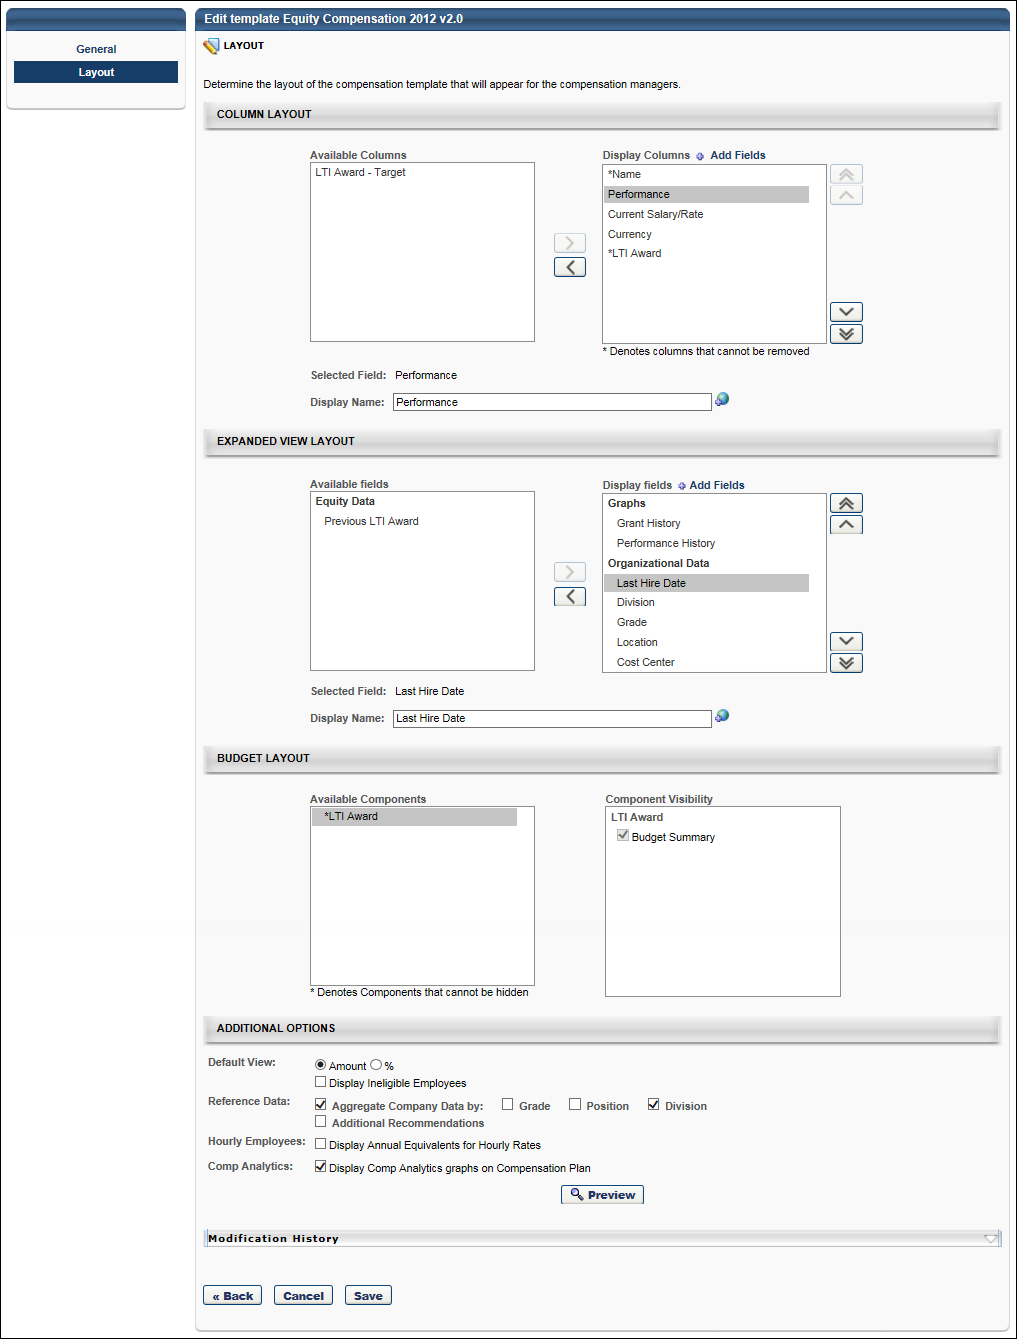 Equity compensation template layout save or cancel maxwellsz